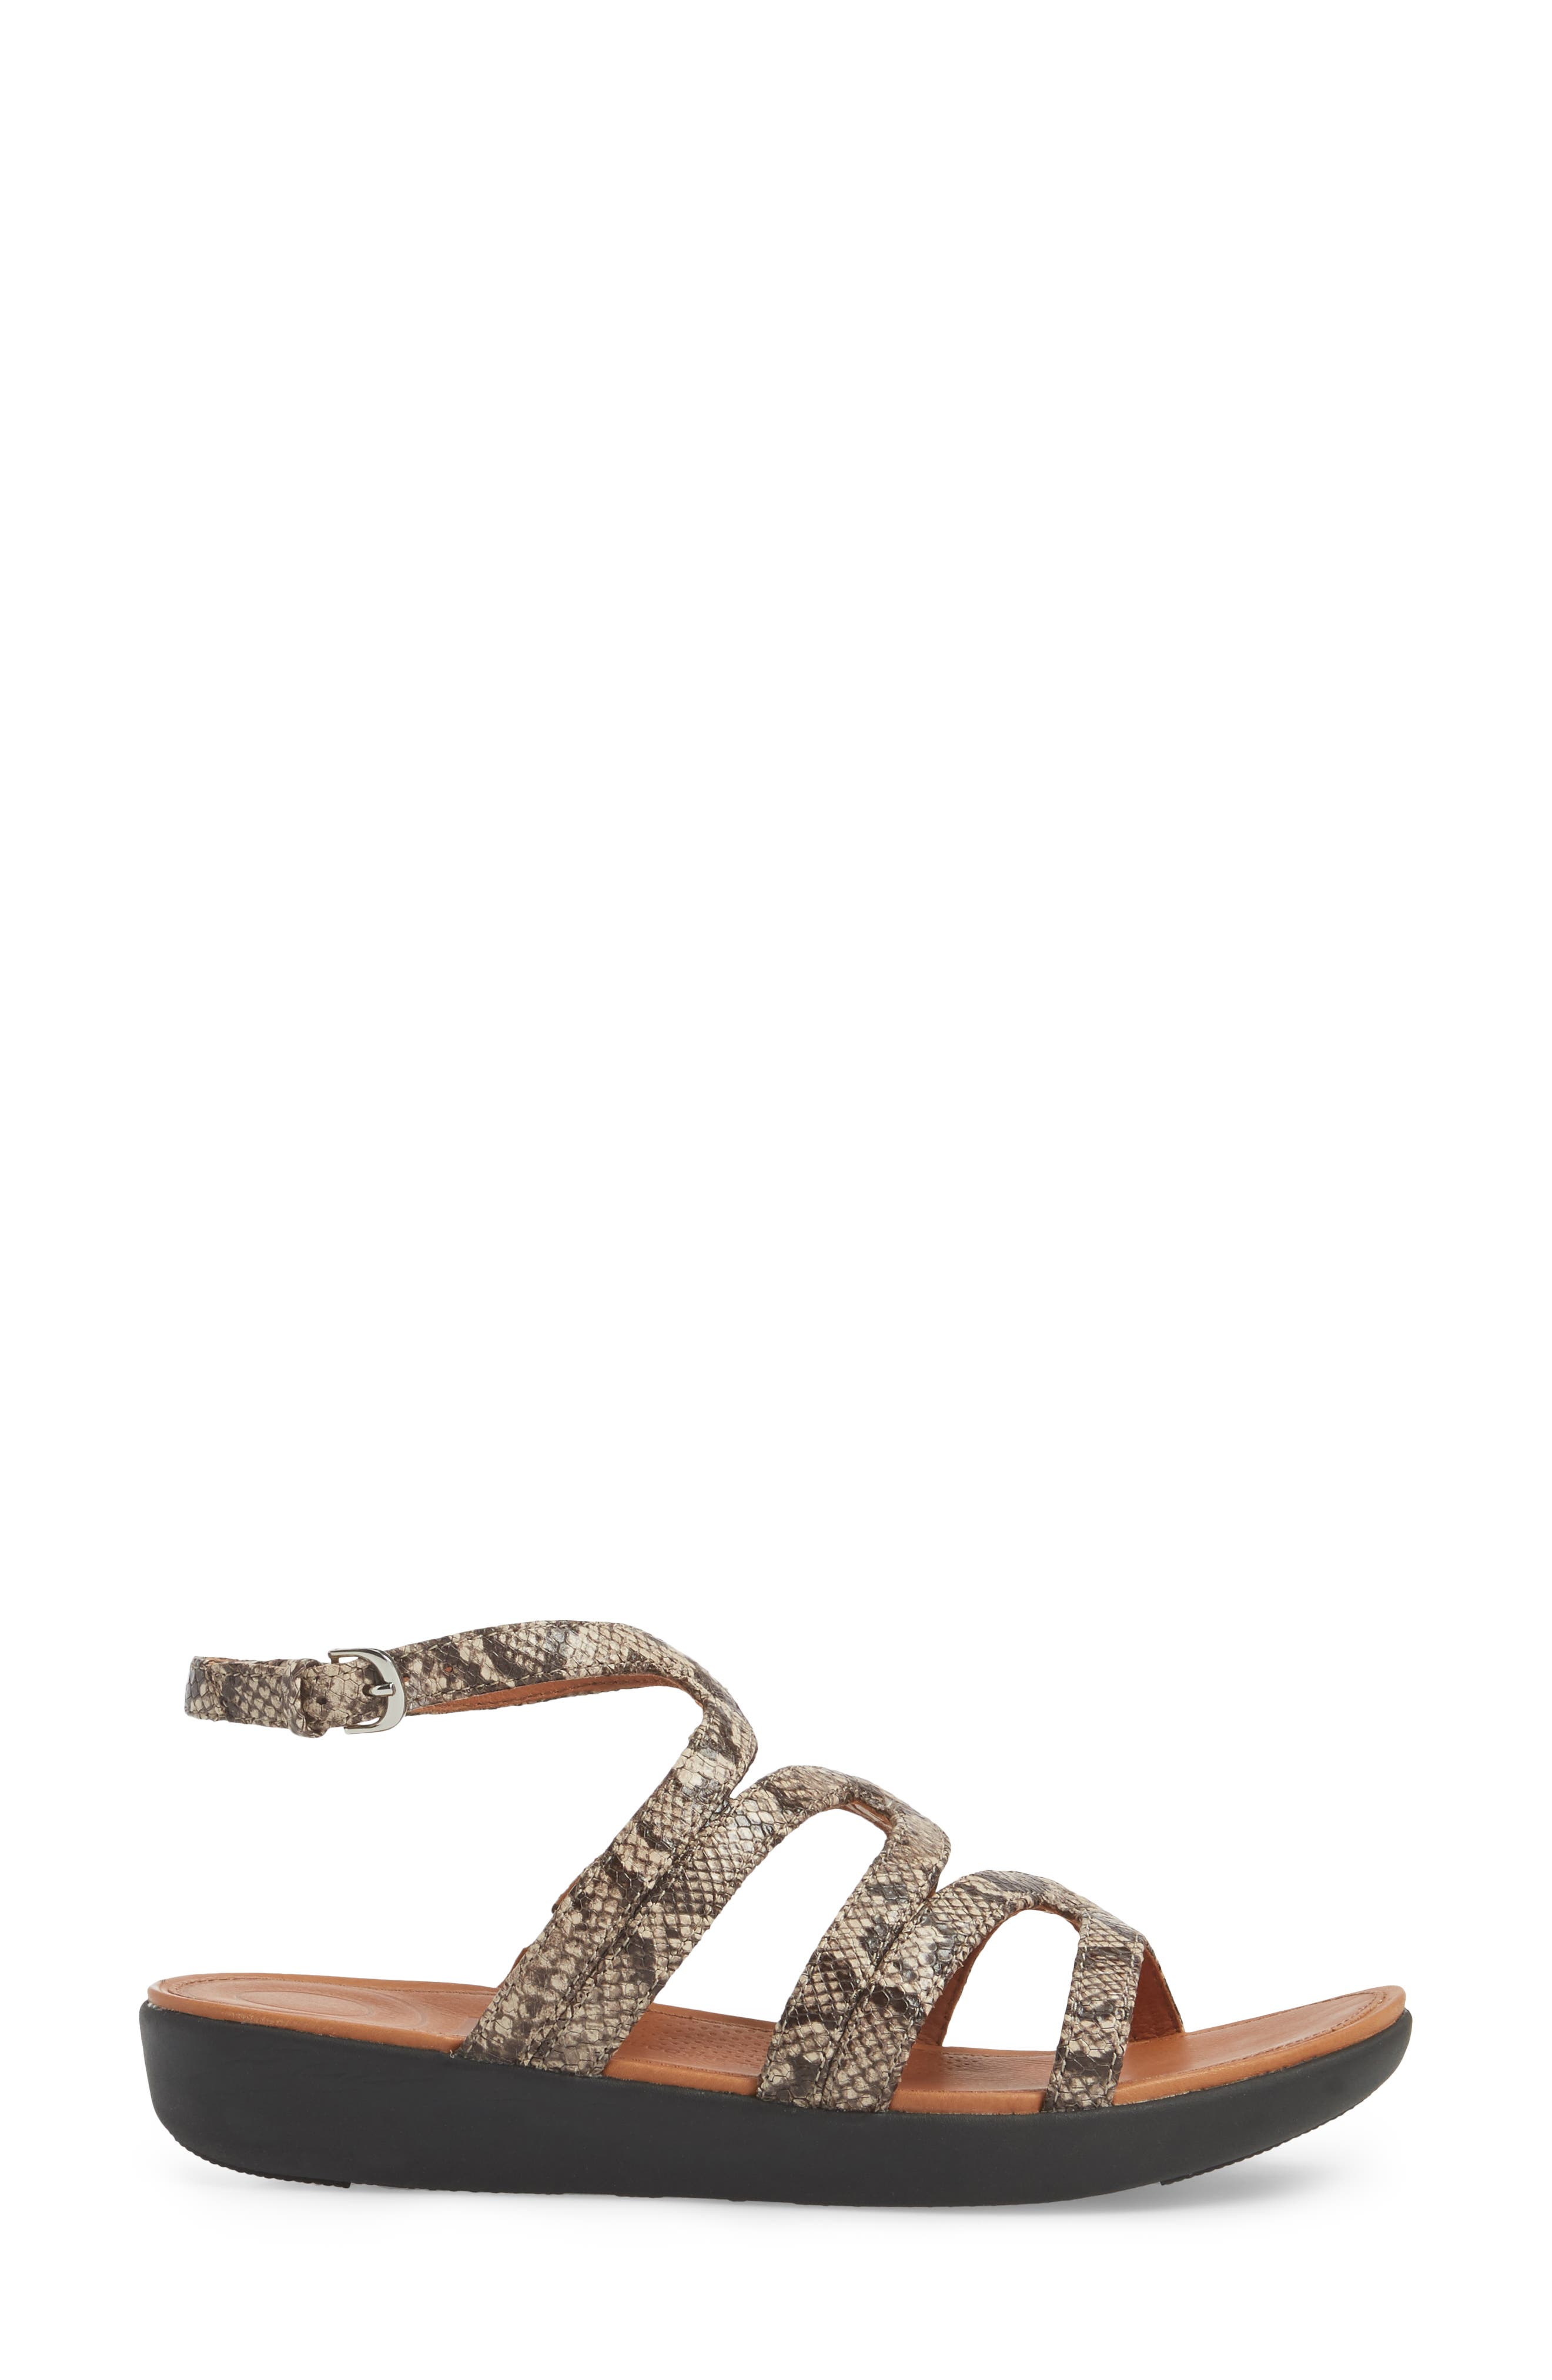 Strata Gladiator Sandal,                             Alternate thumbnail 6, color,